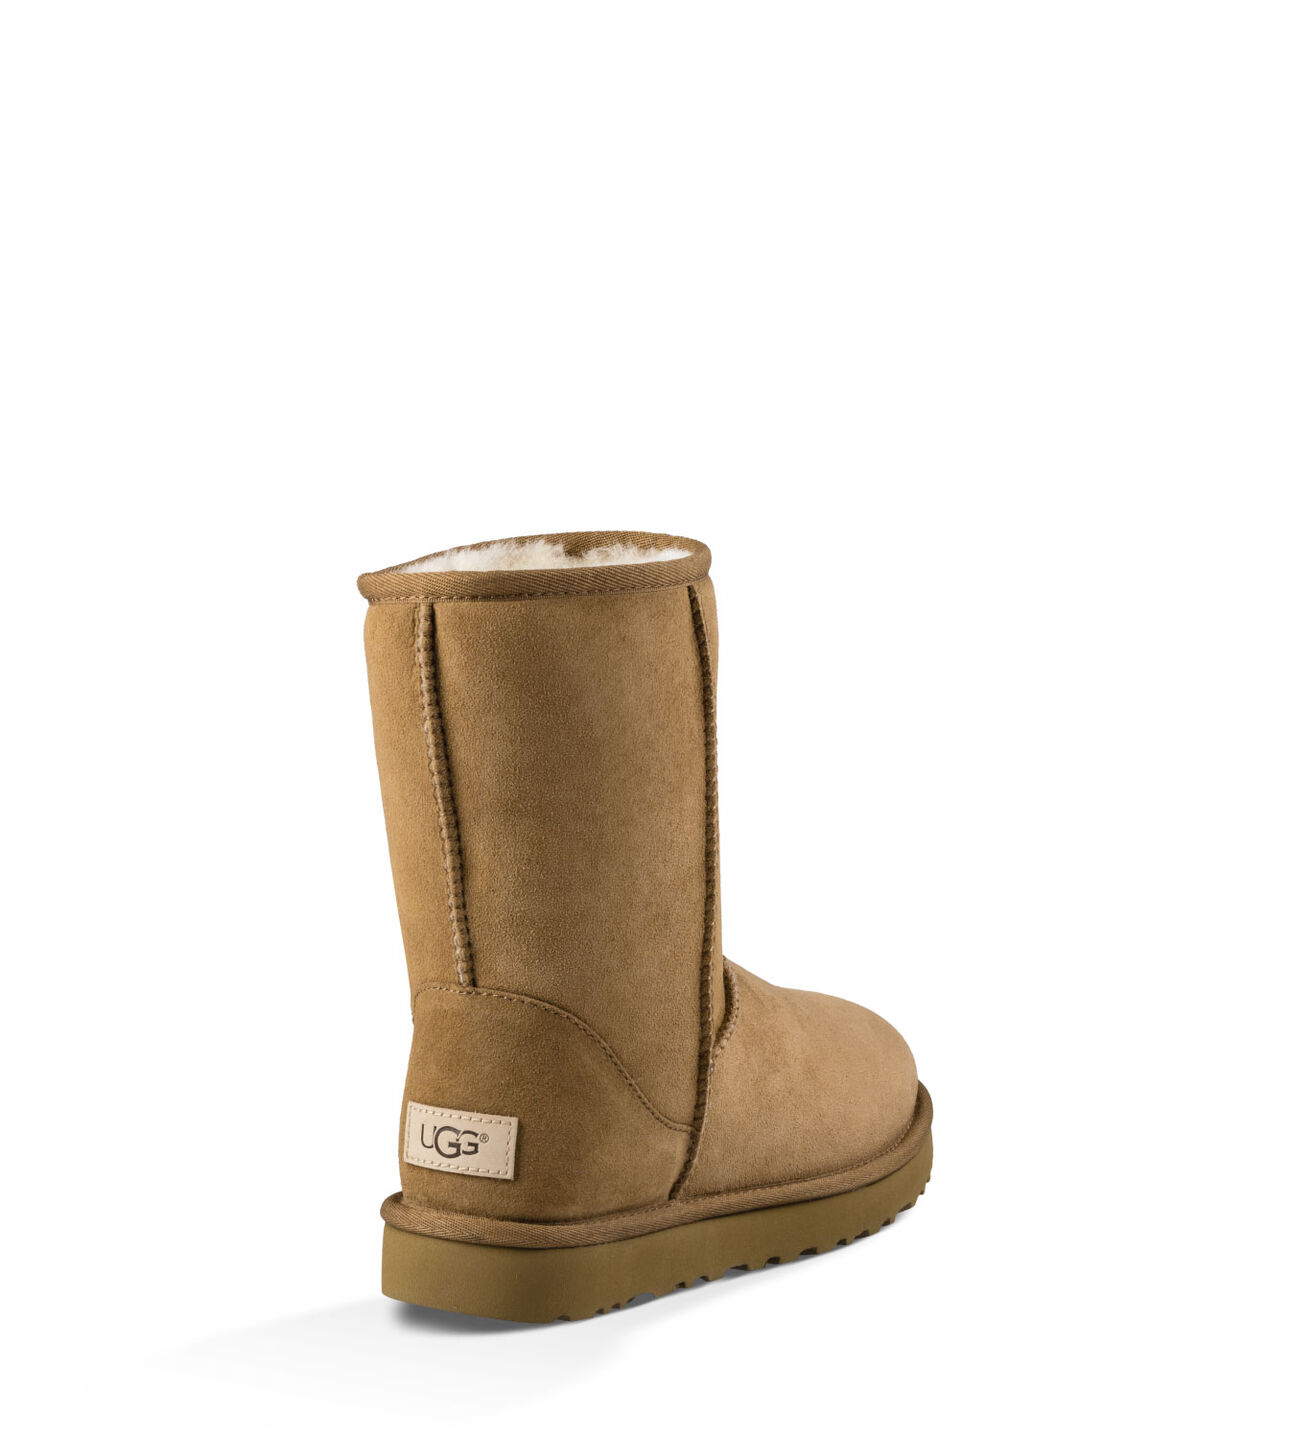 · Classic Leather Women's Short Peacoat UGG UCwB4nq5xC The alleged relationship occurred both while the student was in school, enrolled as .